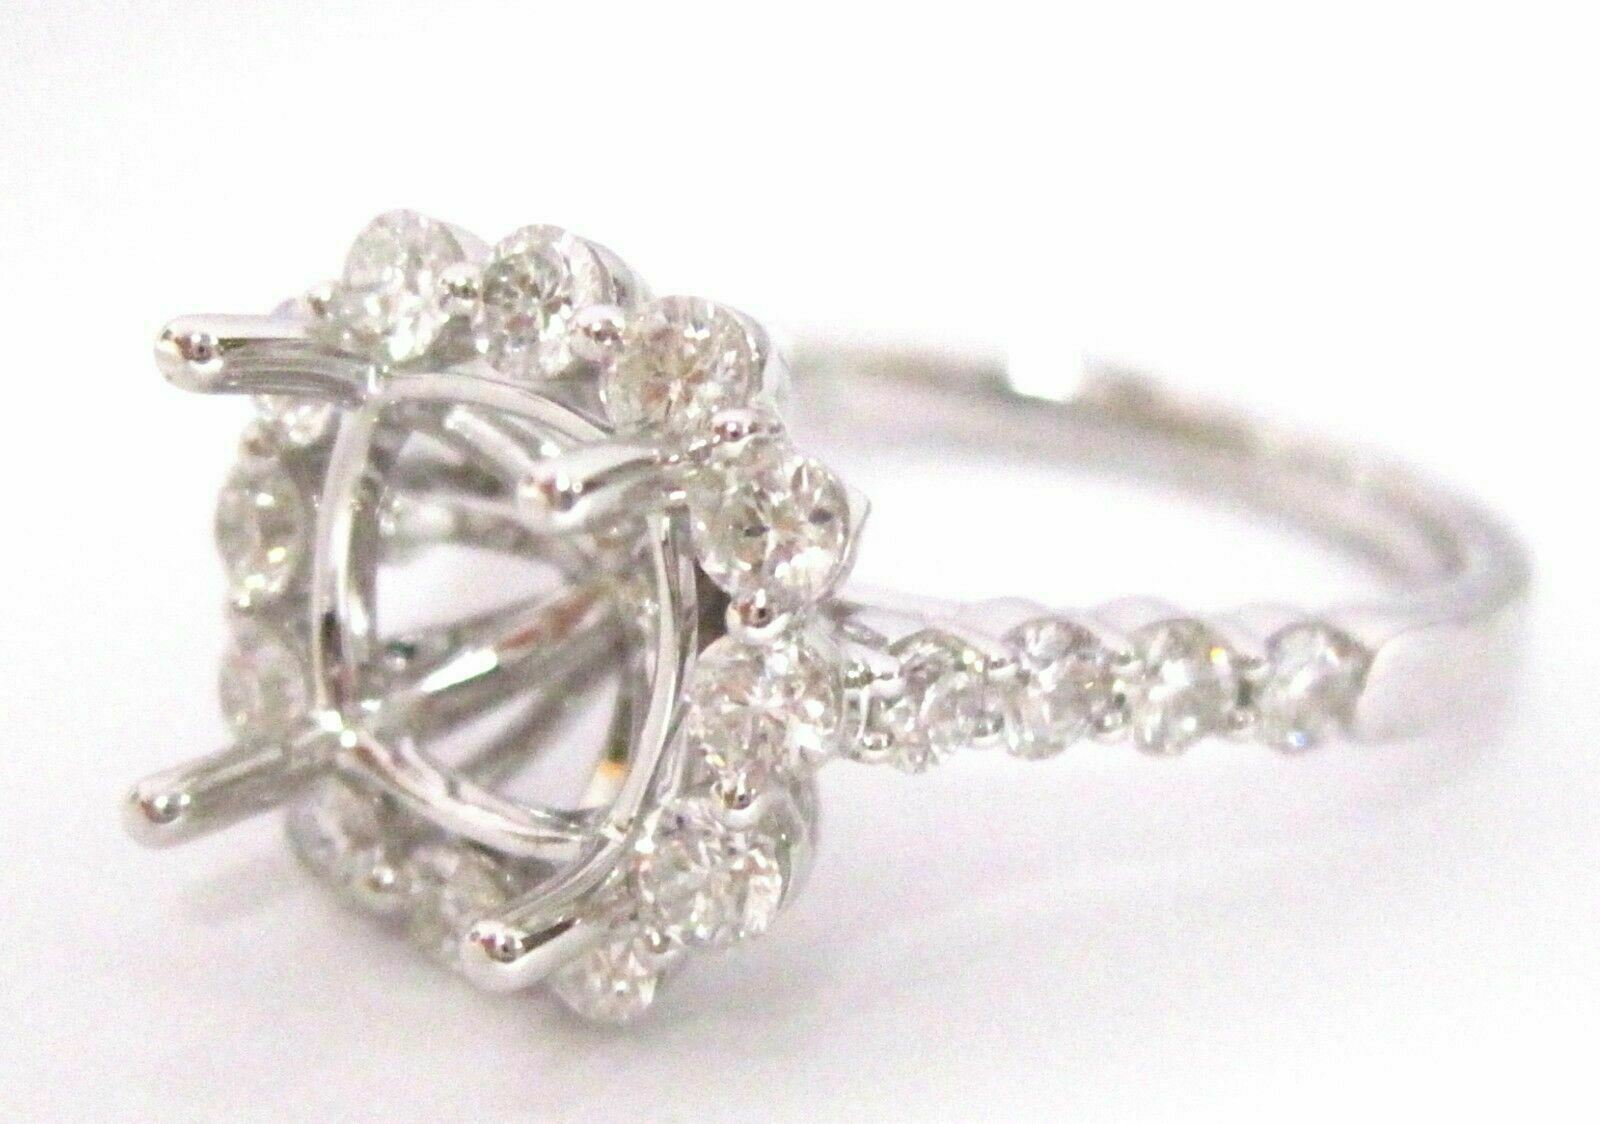 4 Prongs Semi-Mounting for Round or Cushion Diamond Ring Engagement 18k